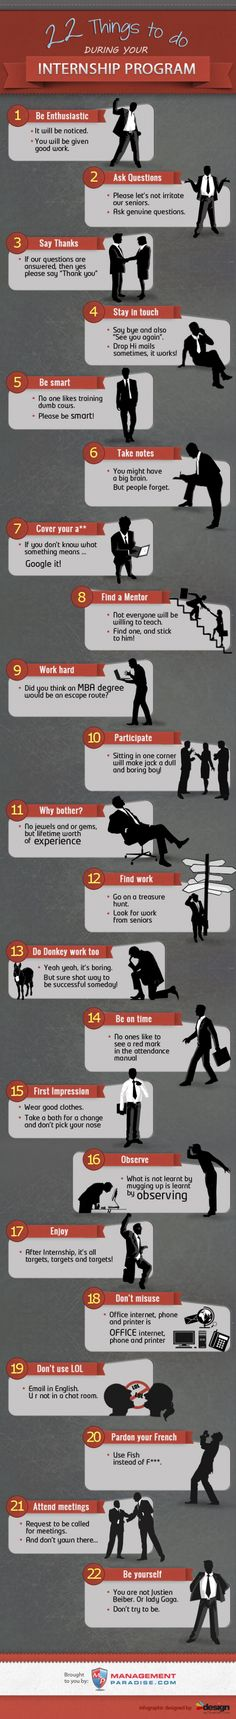 22 things to do during your internship program Infographic. Gain skills and connections to help advance your career. Career Exploration, Internship Program, Job Search Tips, Future Career, Career Development, Personal Development, Graduate School, Law School, Career Advice